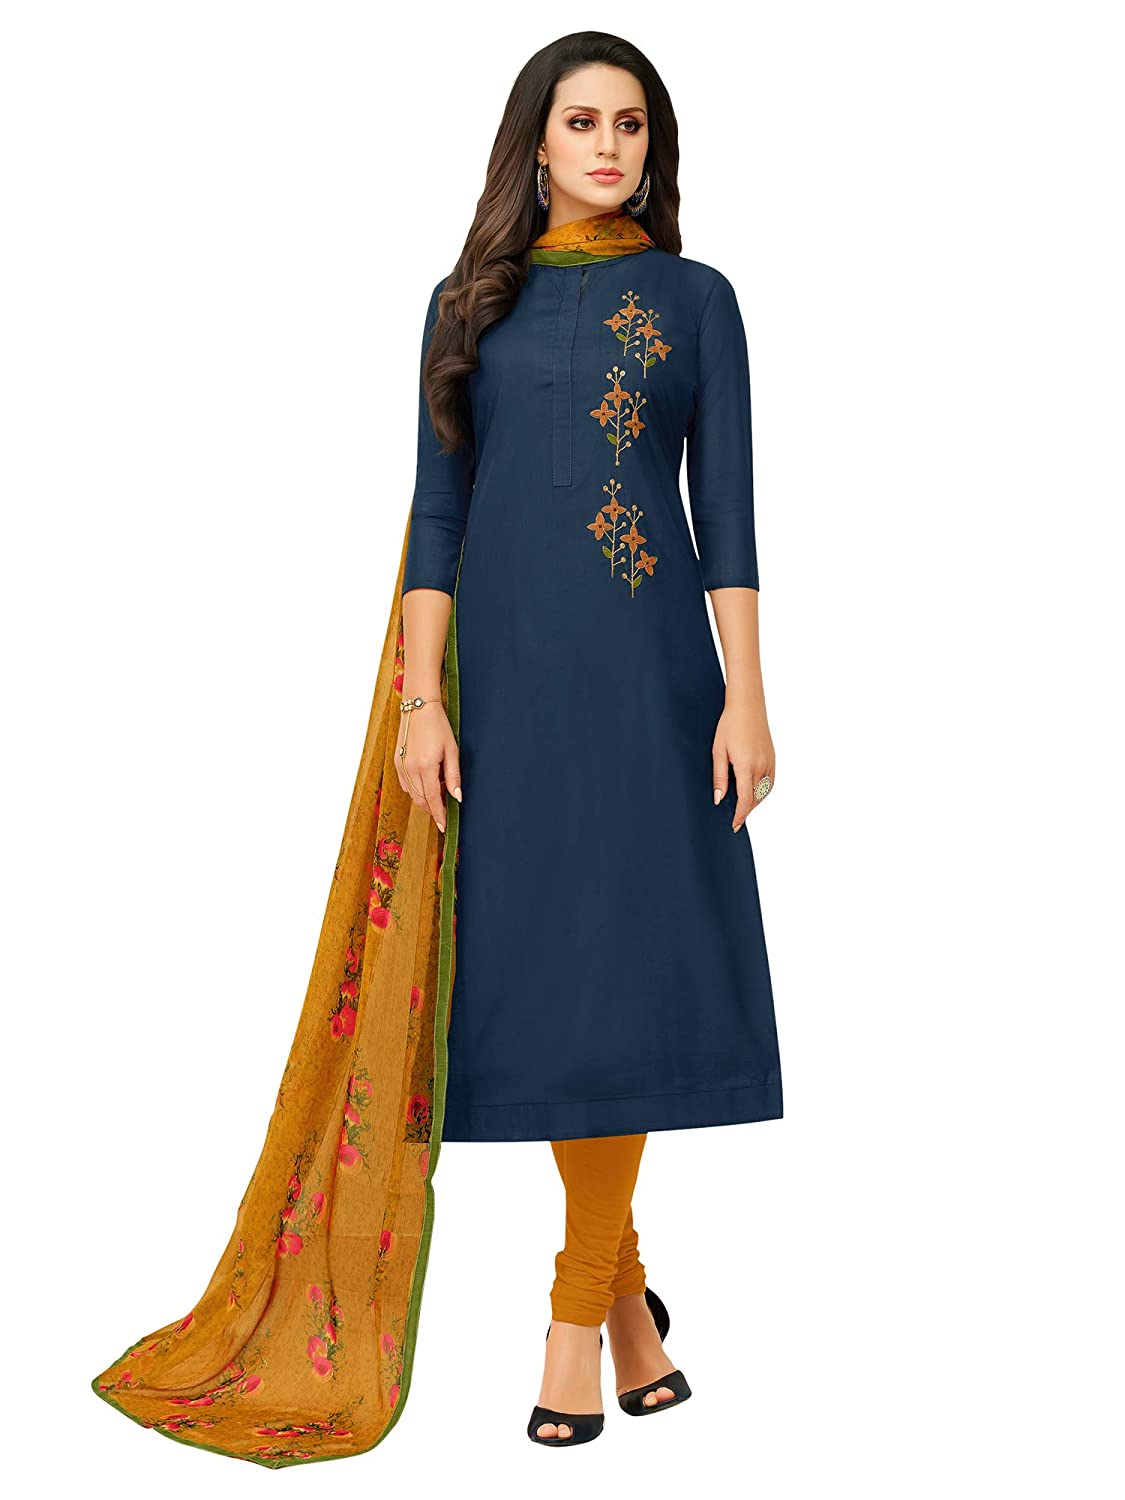 AKHILAM Women's Embroidered Chanderi Cotton Semi-Stitched Chudidar Salwar Suit Dress Material with Chiffon Dupatta (Blue_Free Size)